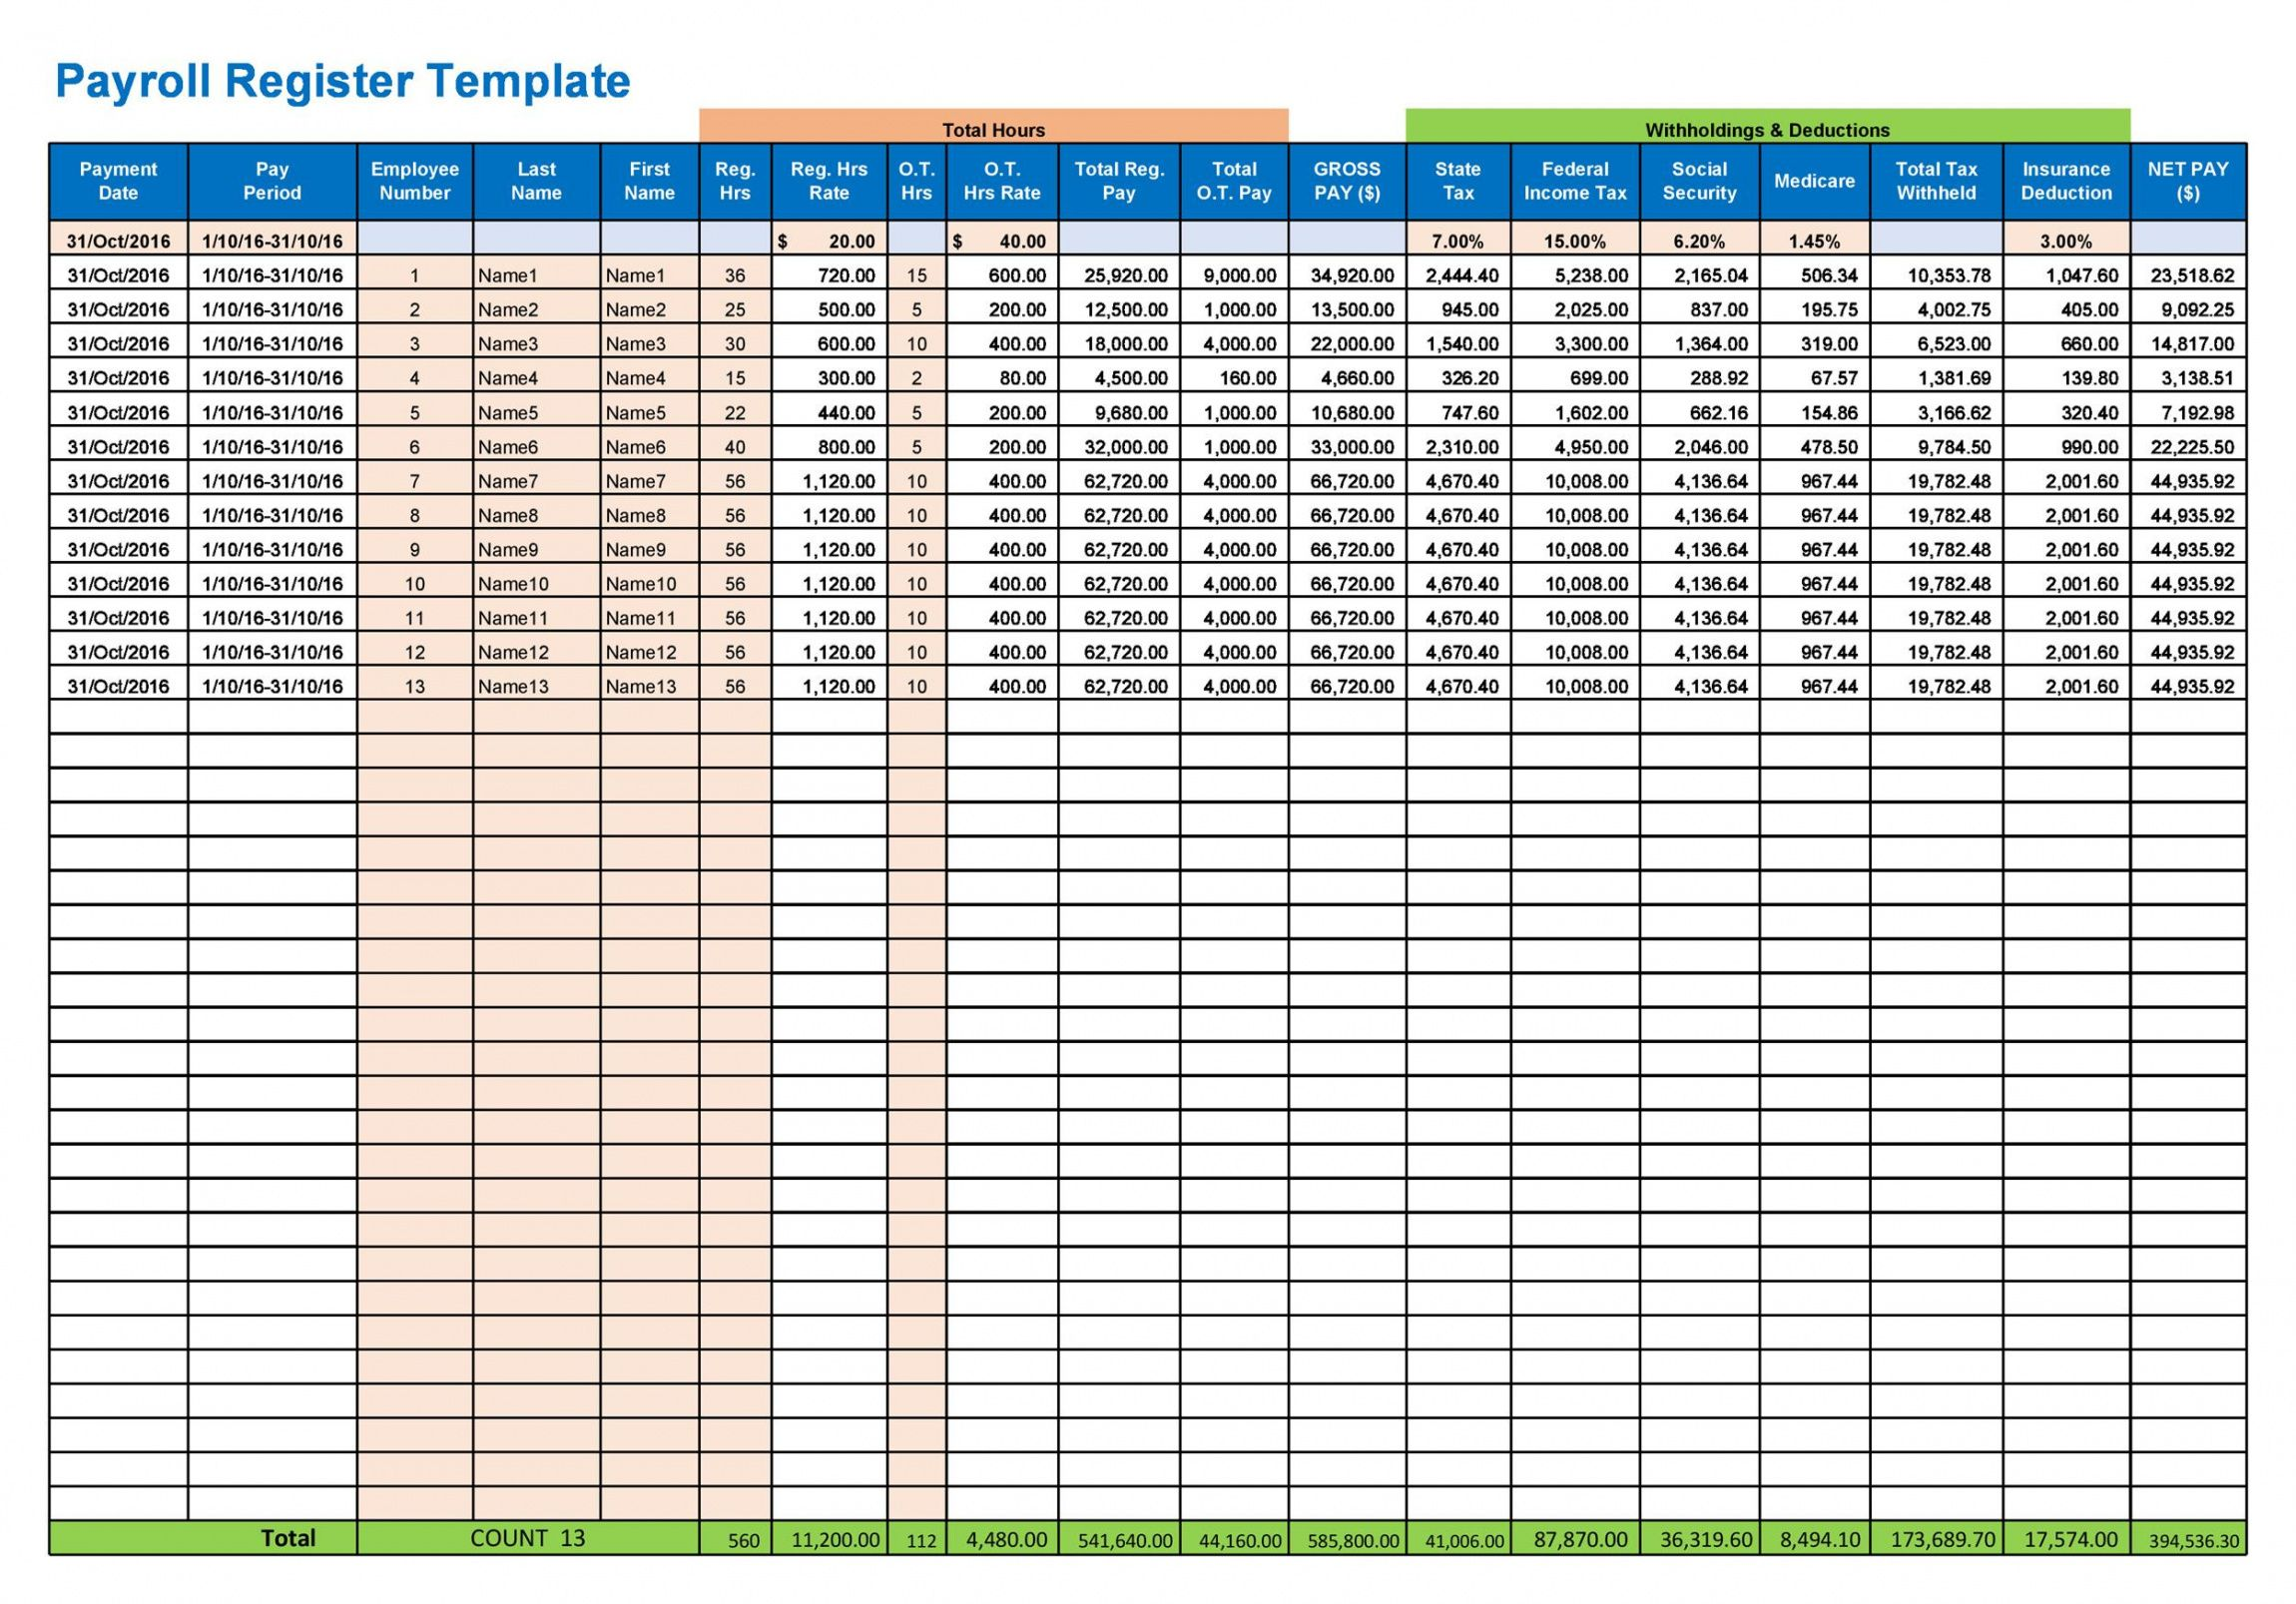 40 free payroll templates & calculators  templatelab employee payroll register template excel